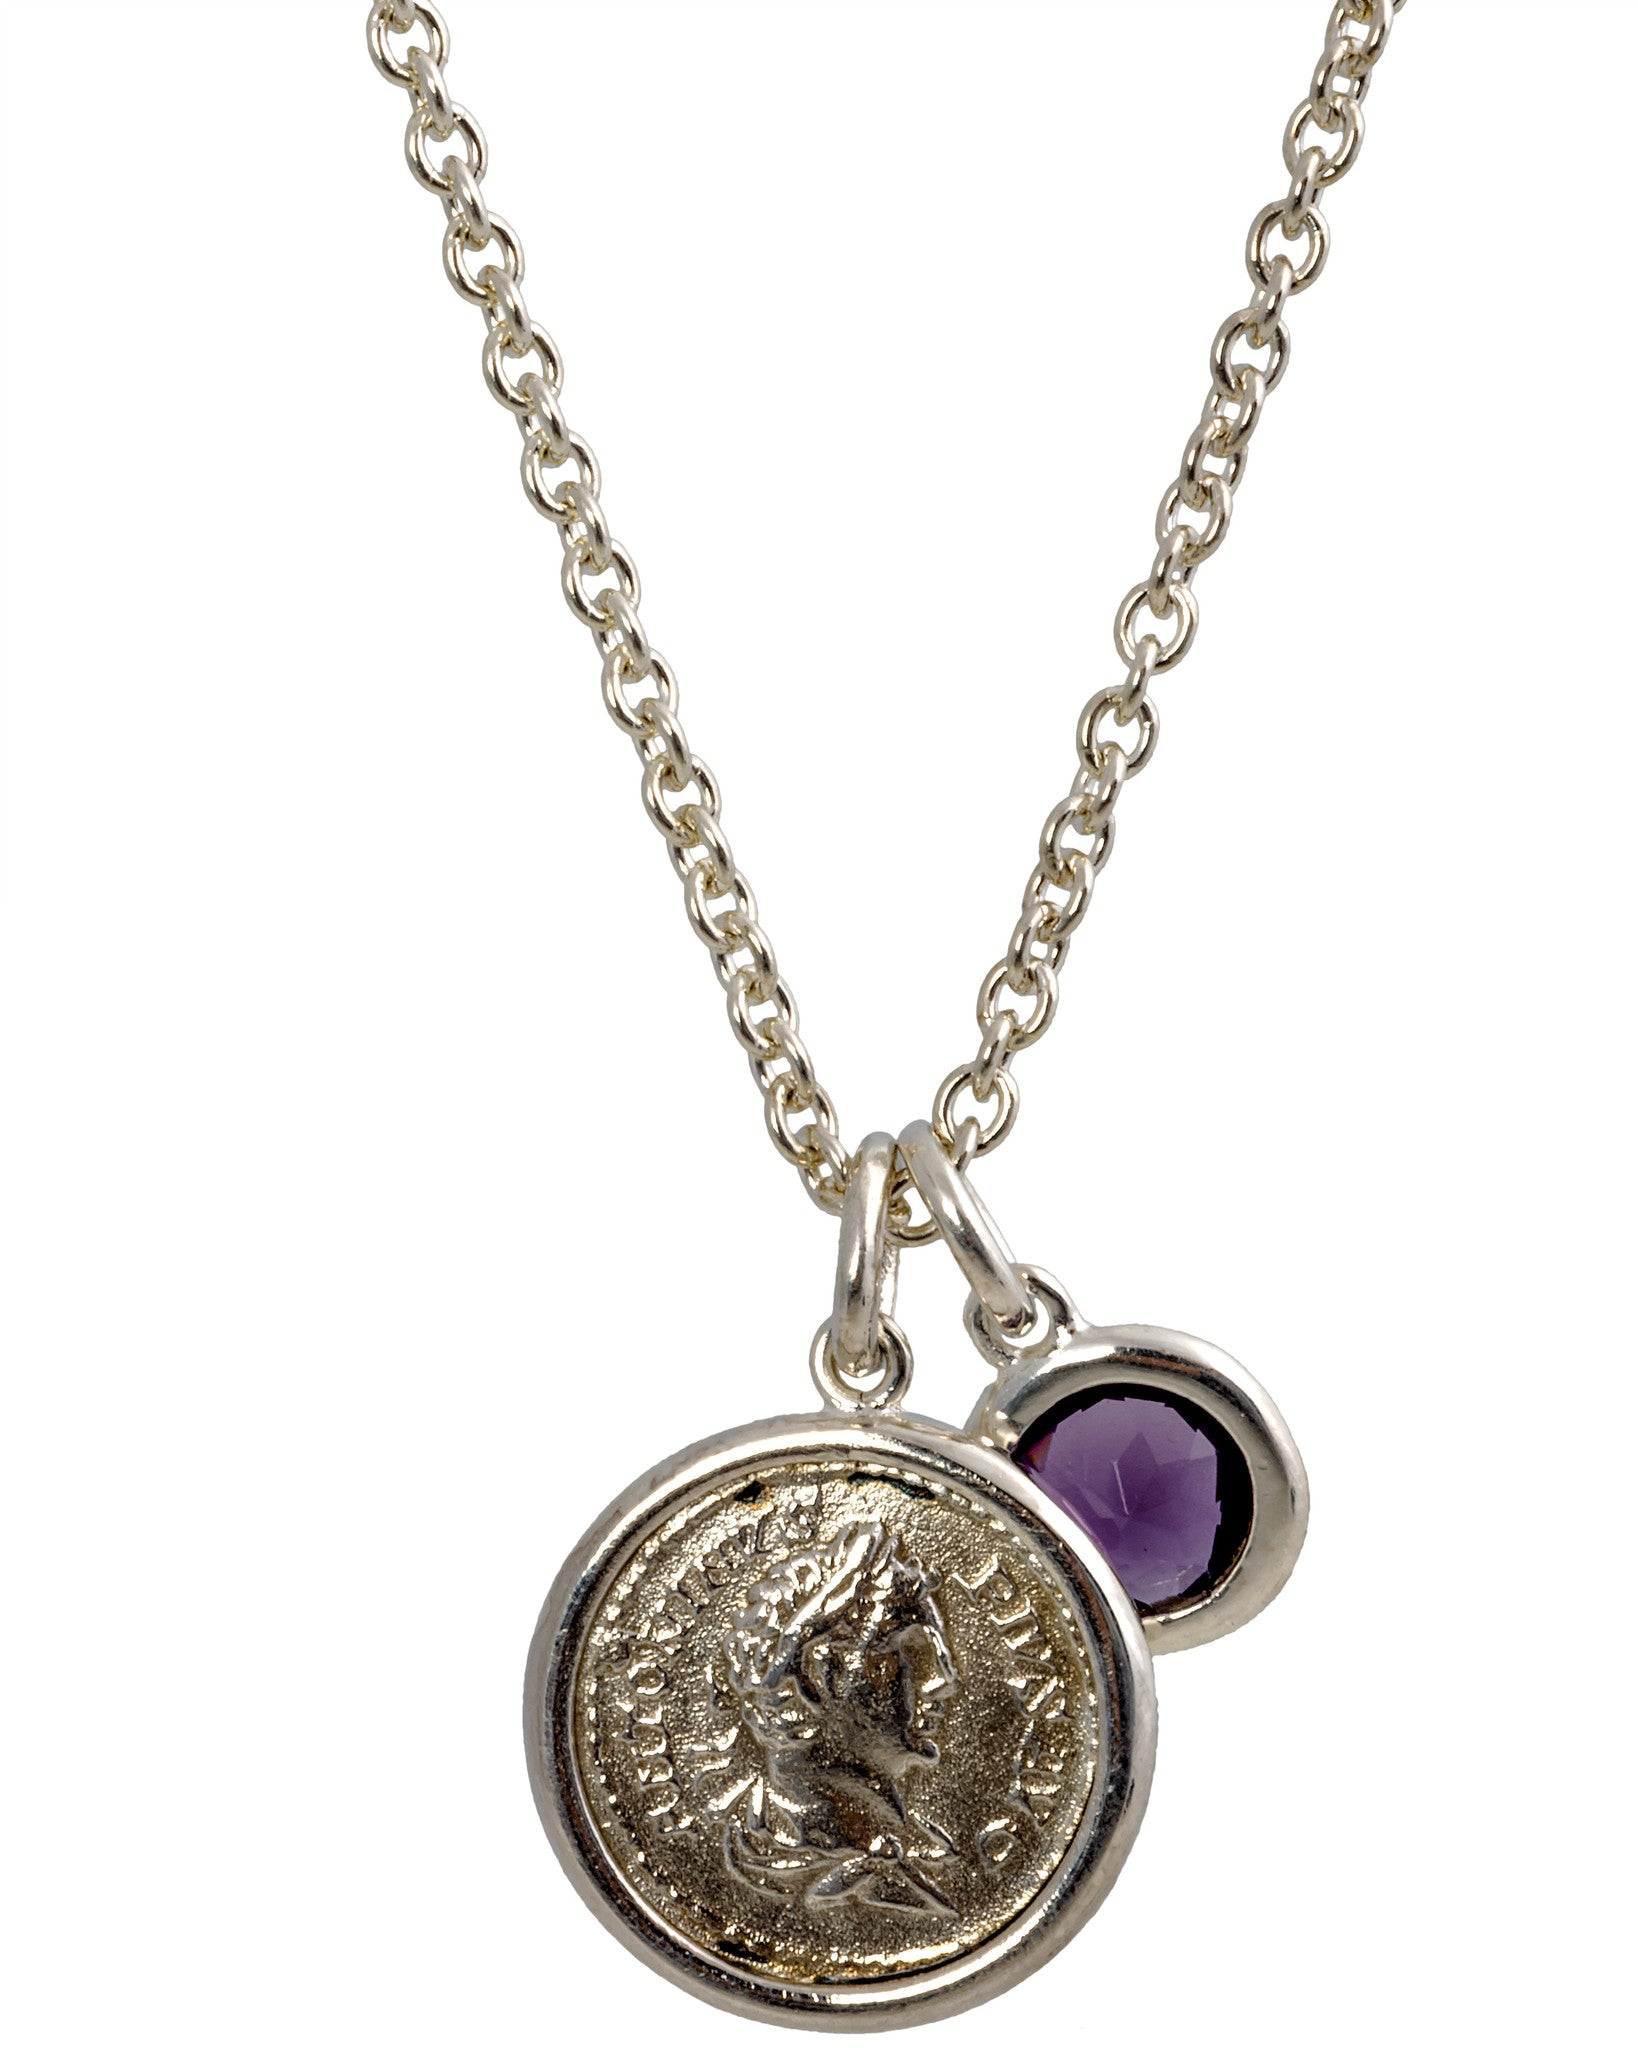 Legacy Vivace Sterling Silver Chain w/ 1 Medium Antique Pius Coin and Amethyst (1.50 ct.) Pendants - Chain Length: 18 in